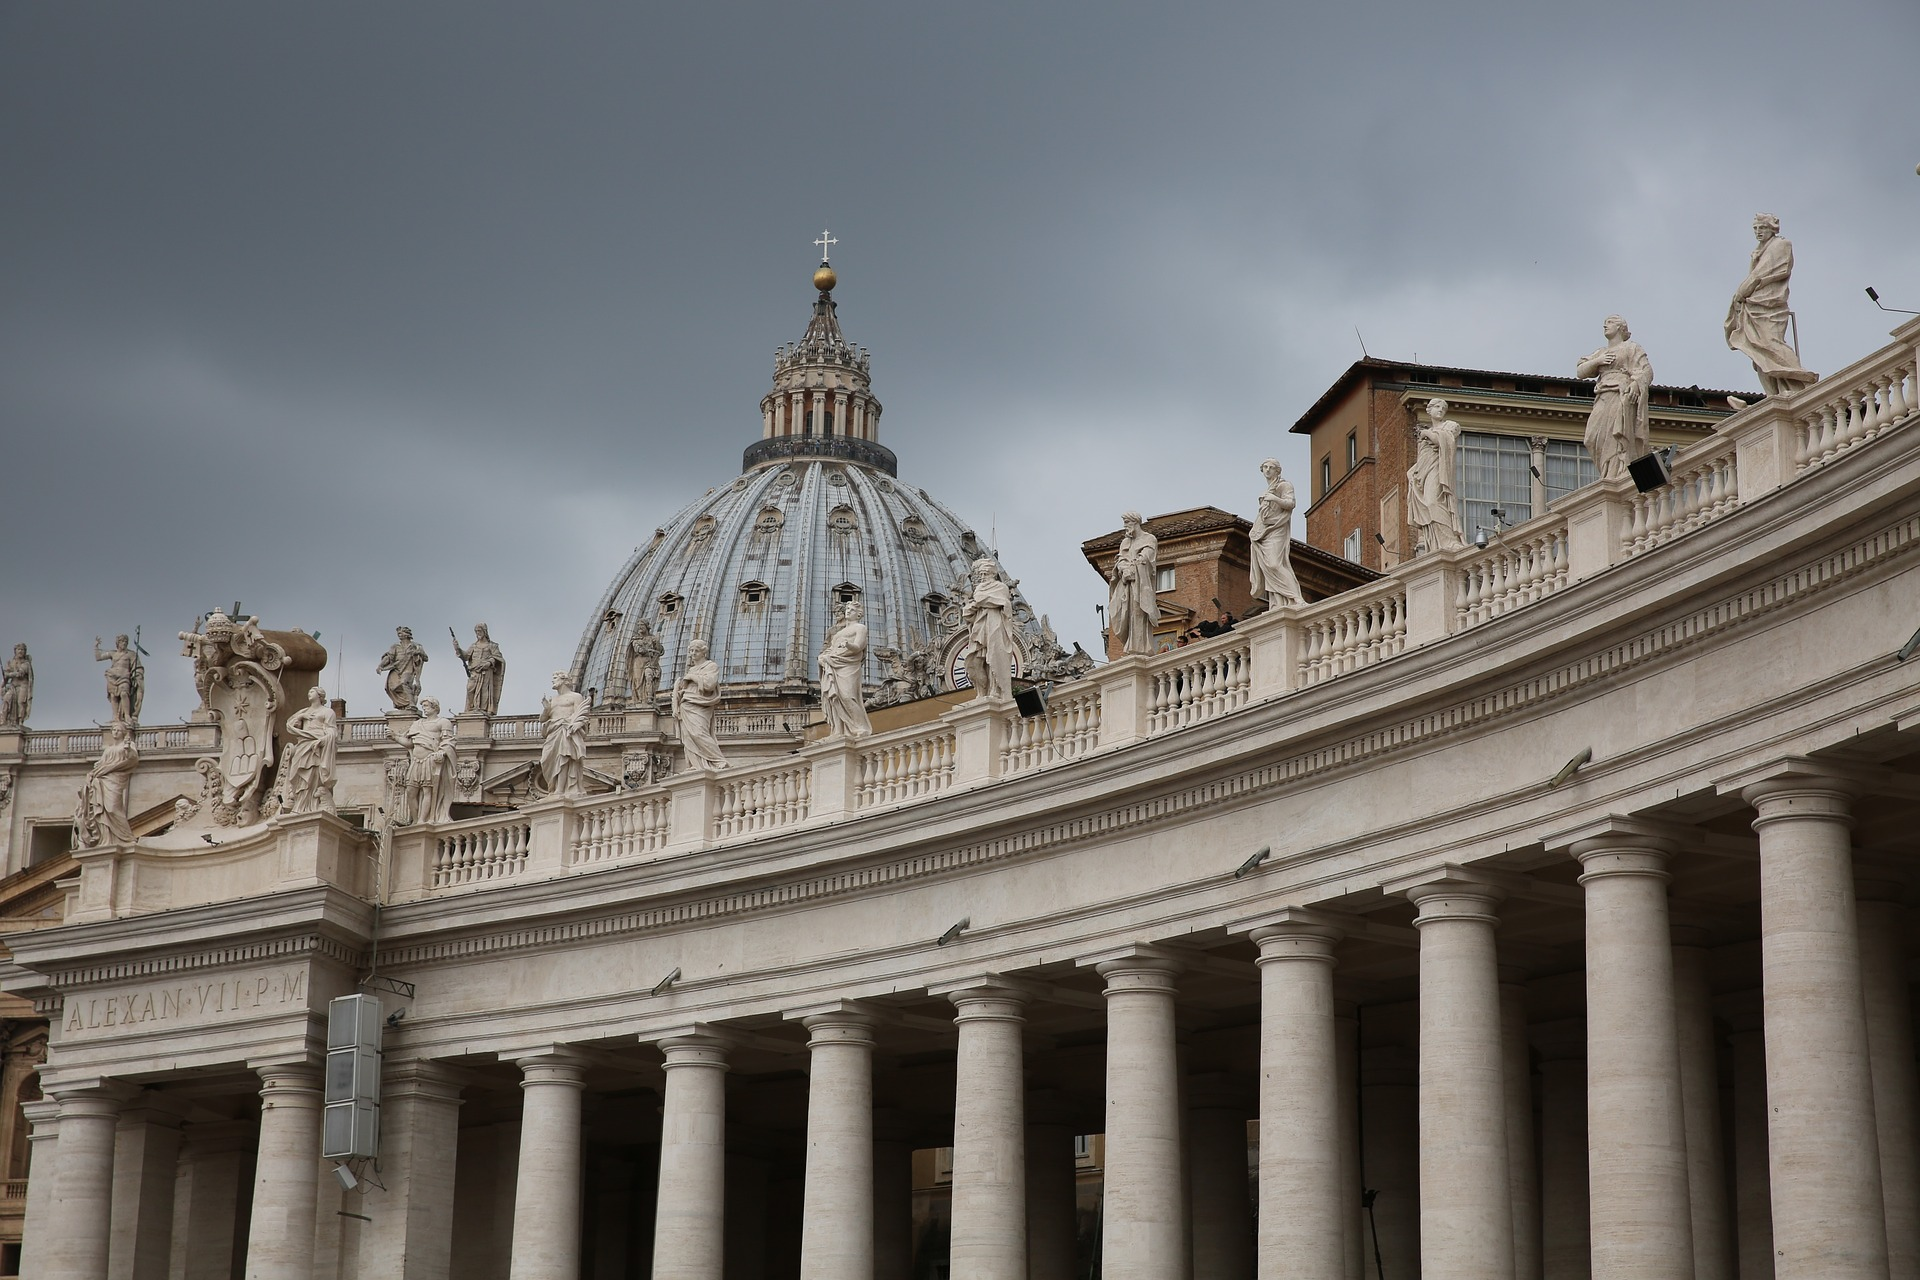 st-peters-basilica-1030710_1920